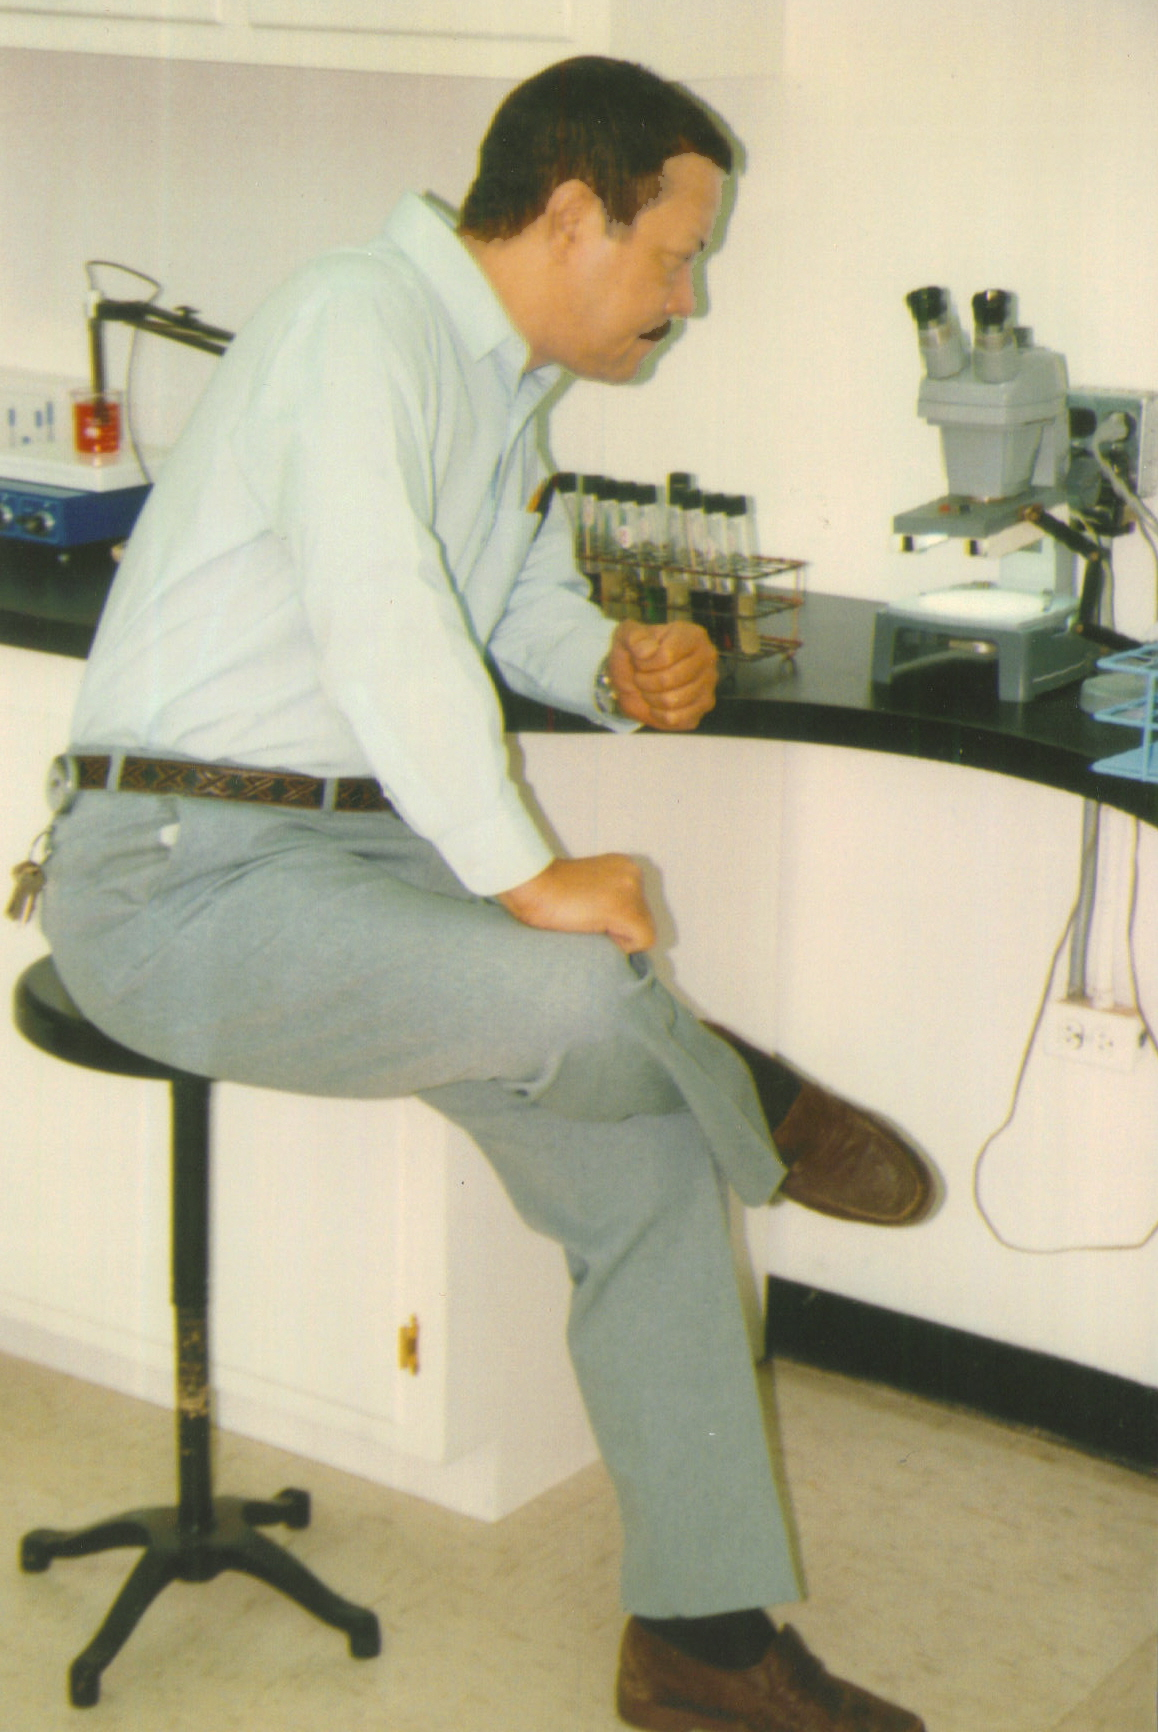 Henri Inspects Counting Microscope